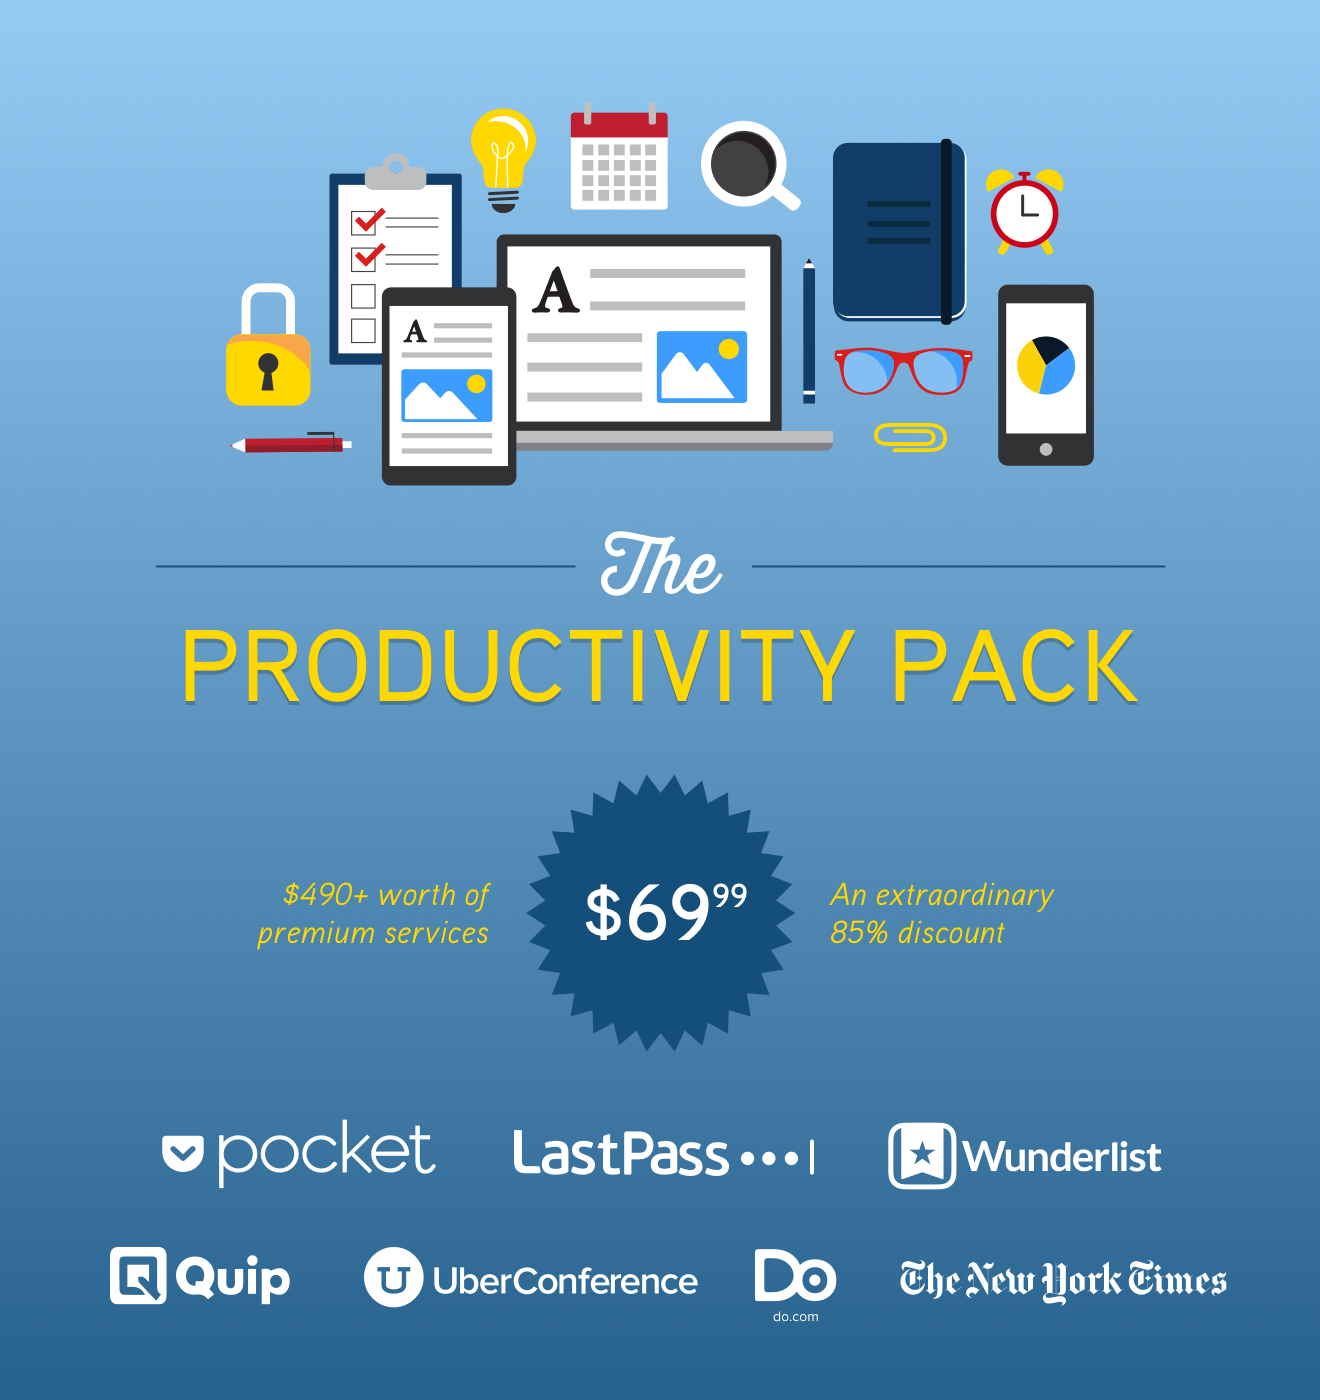 Jumpstart your workday and get the Productivity Pack: Over $490 Worth of Premium Services to Award-Winning Apps!